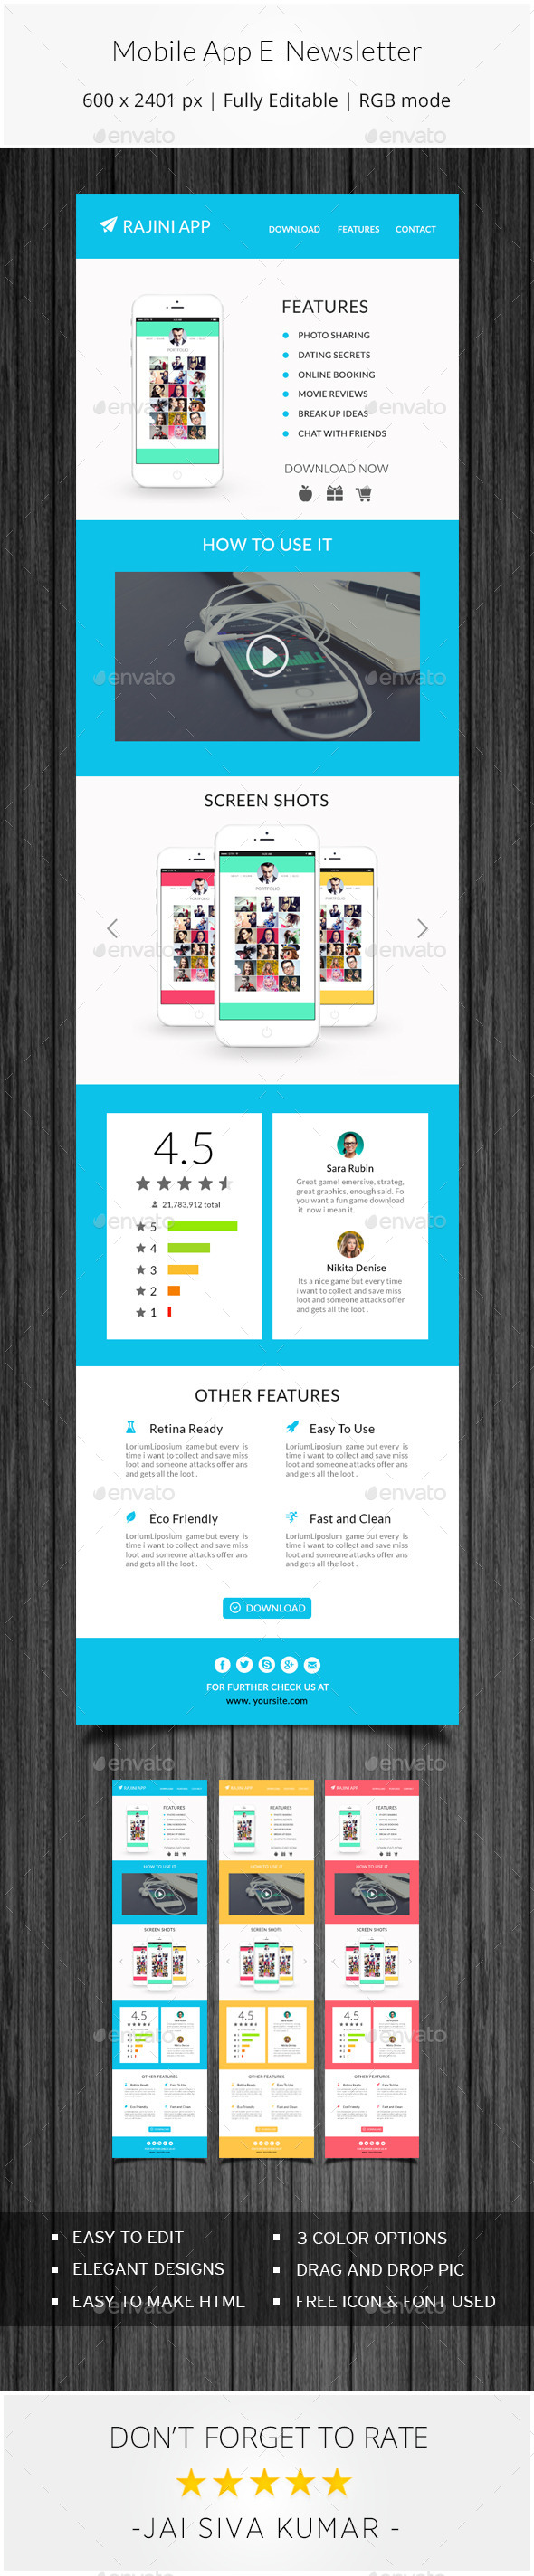 Mobile App Email Template By Jaisivakumar Graphicriver